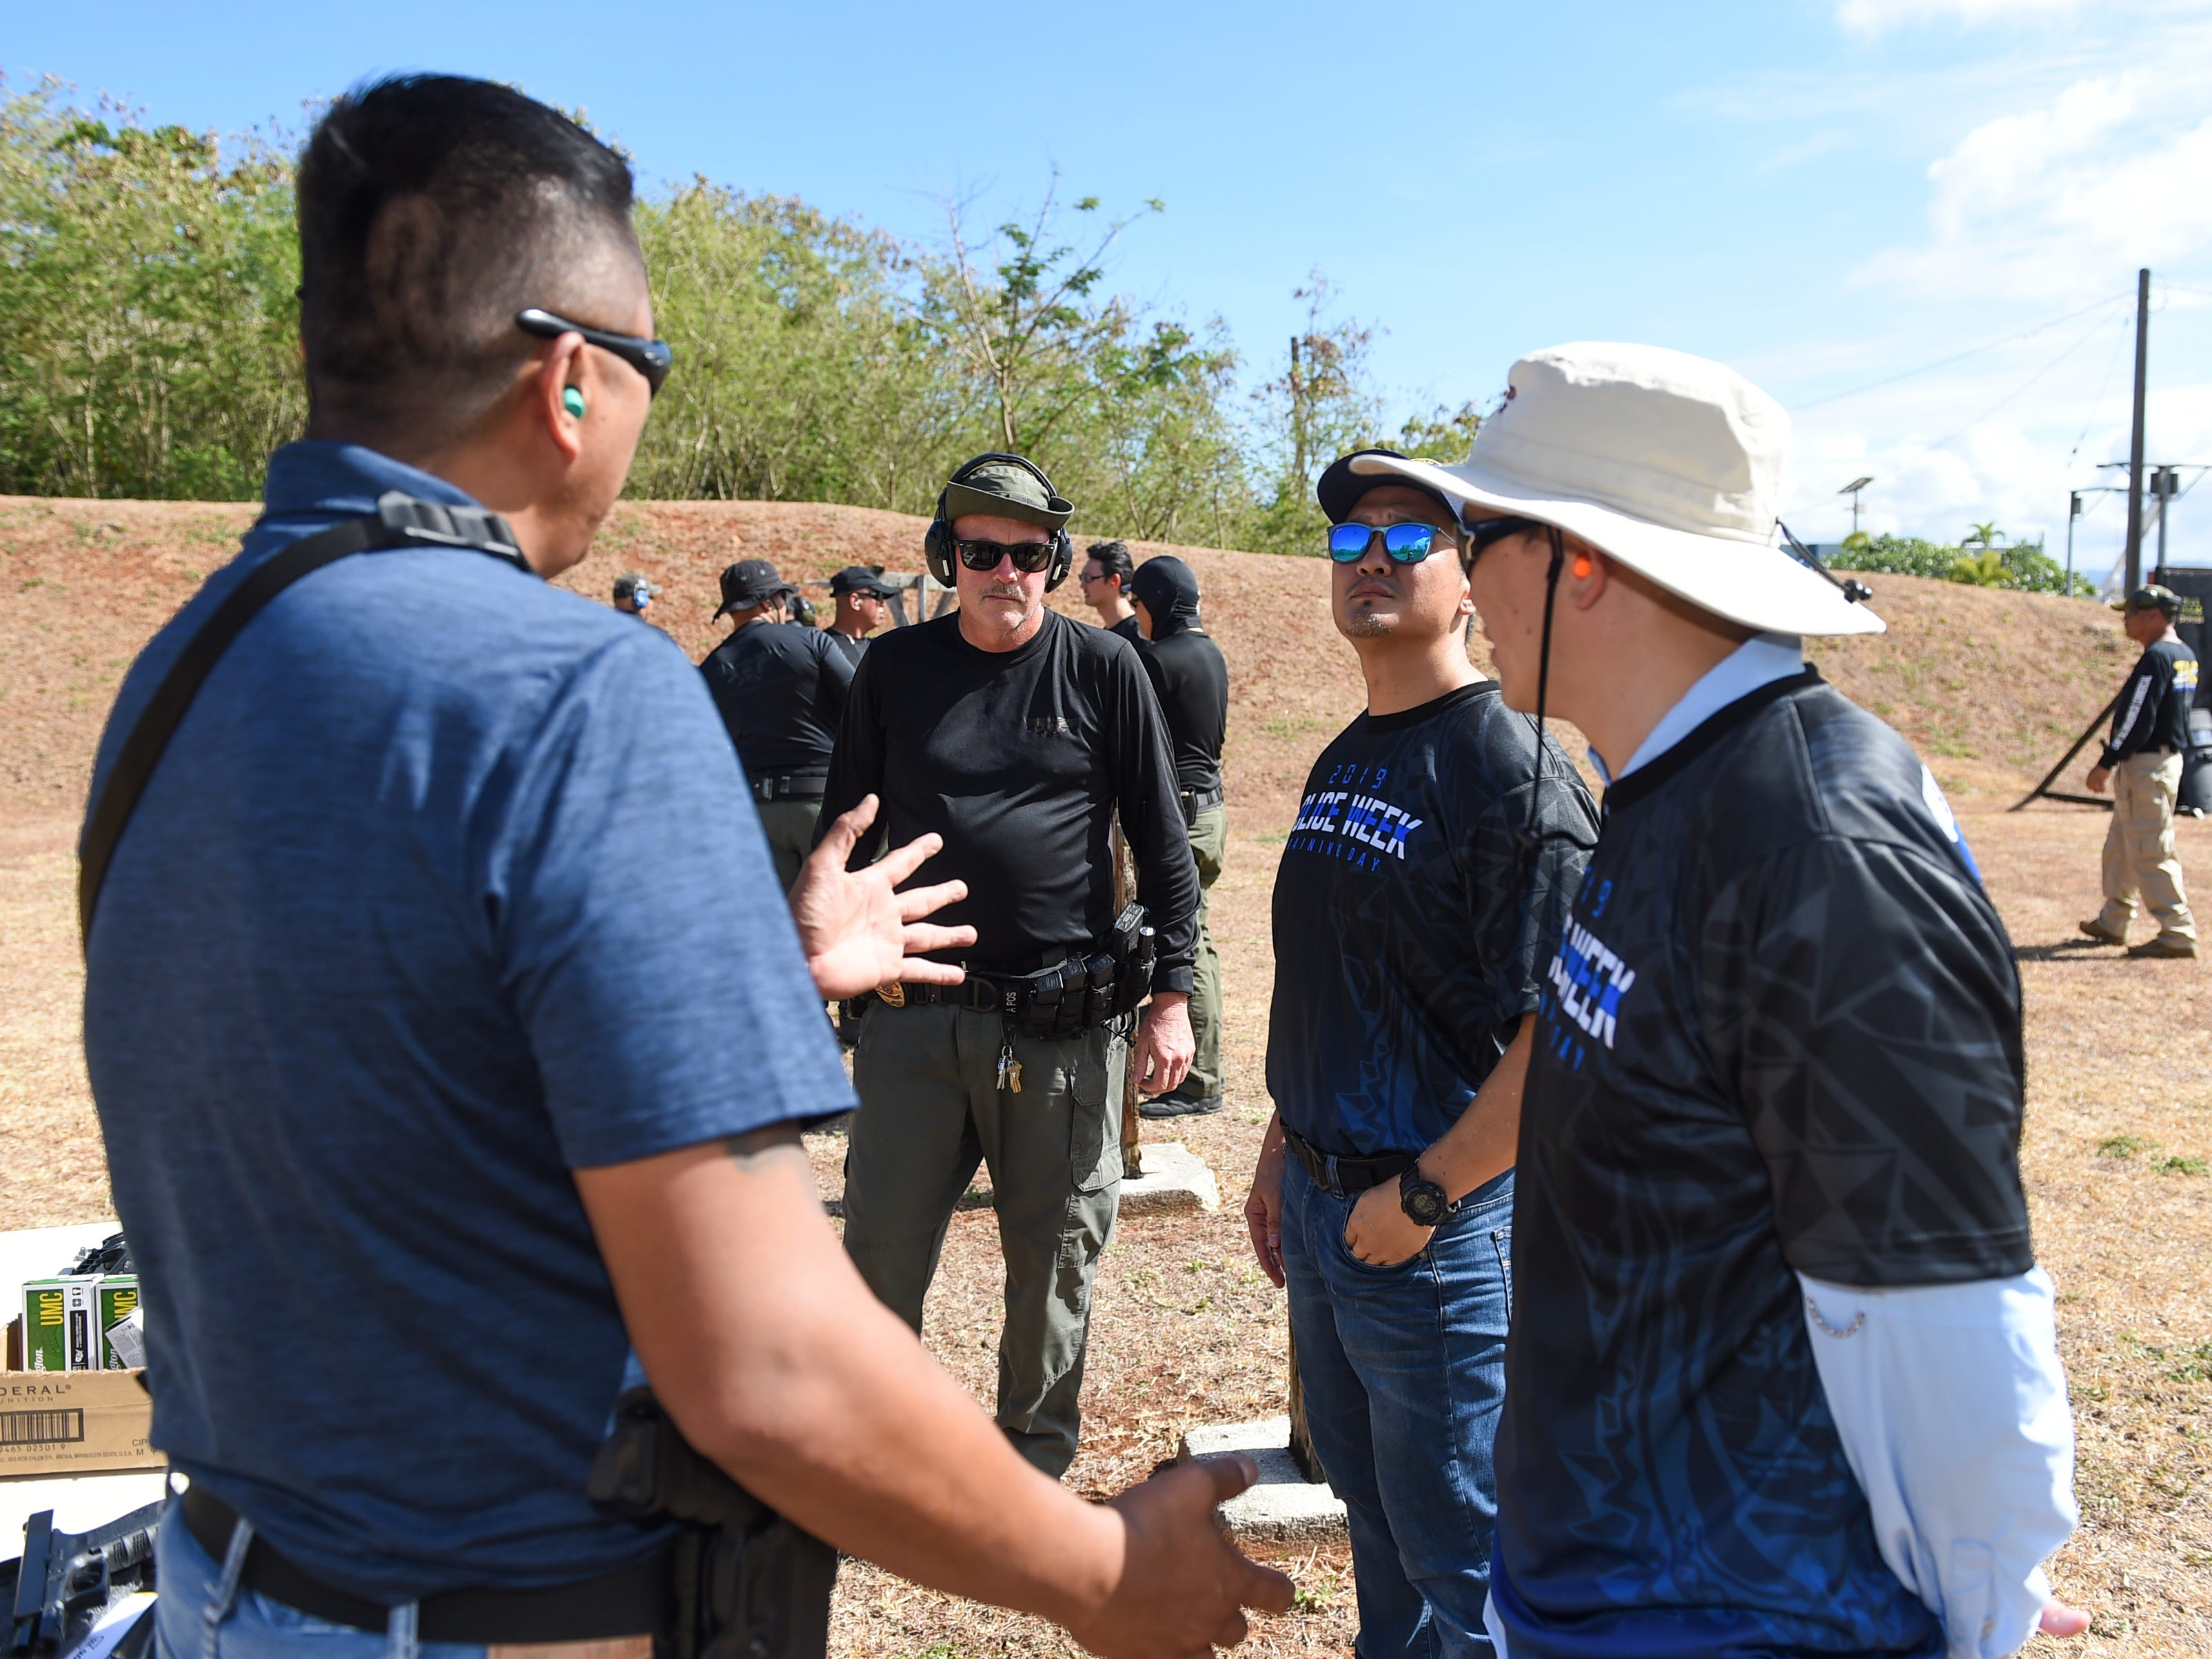 Local business executives are briefed on firearms safety by Guam Police Department officers during Police Week at GPD's shooting range on the Guam Community College campus in Mangilao, May 14, 2019.